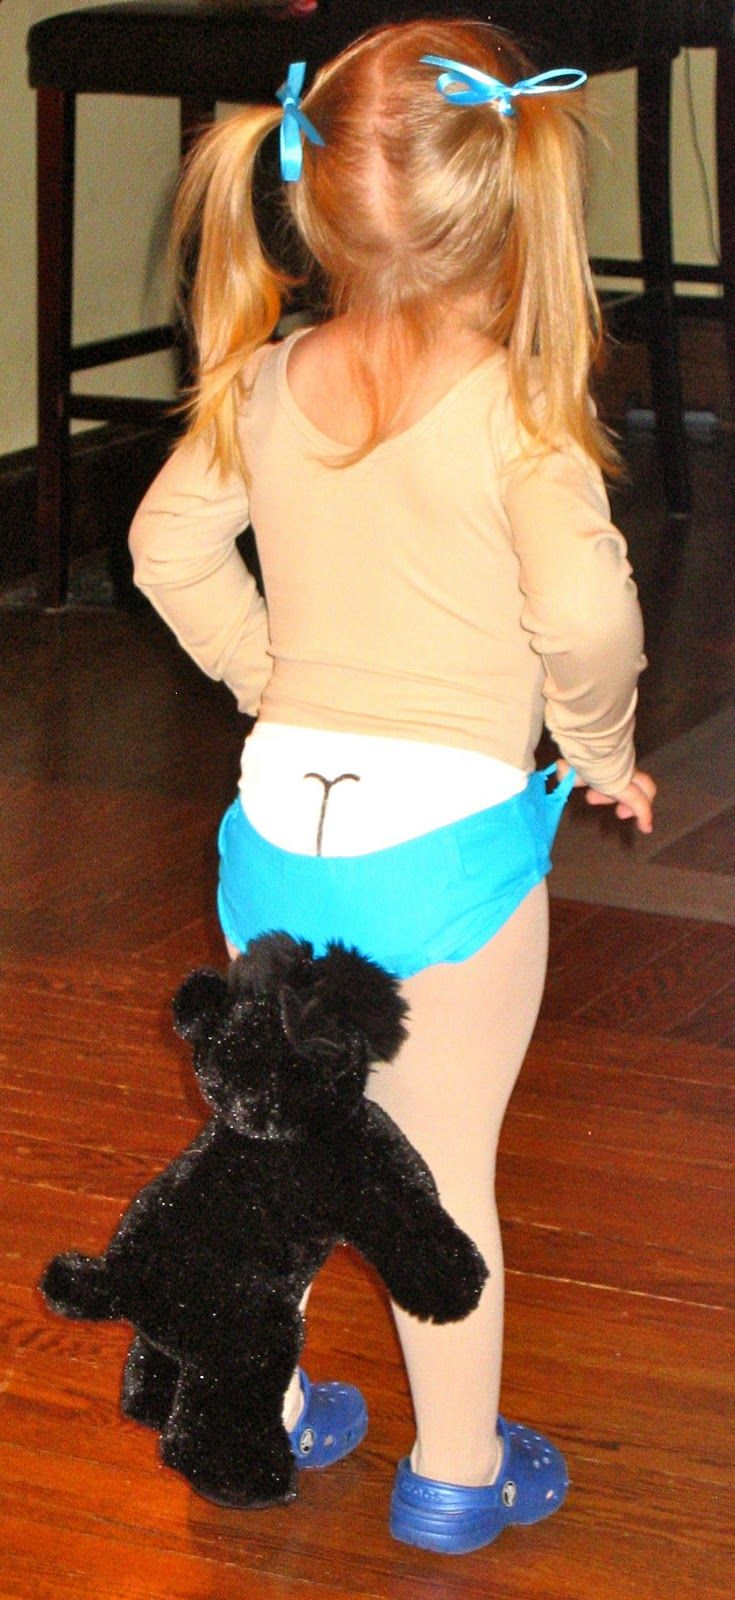 Coppertone girl - cute costume idea!